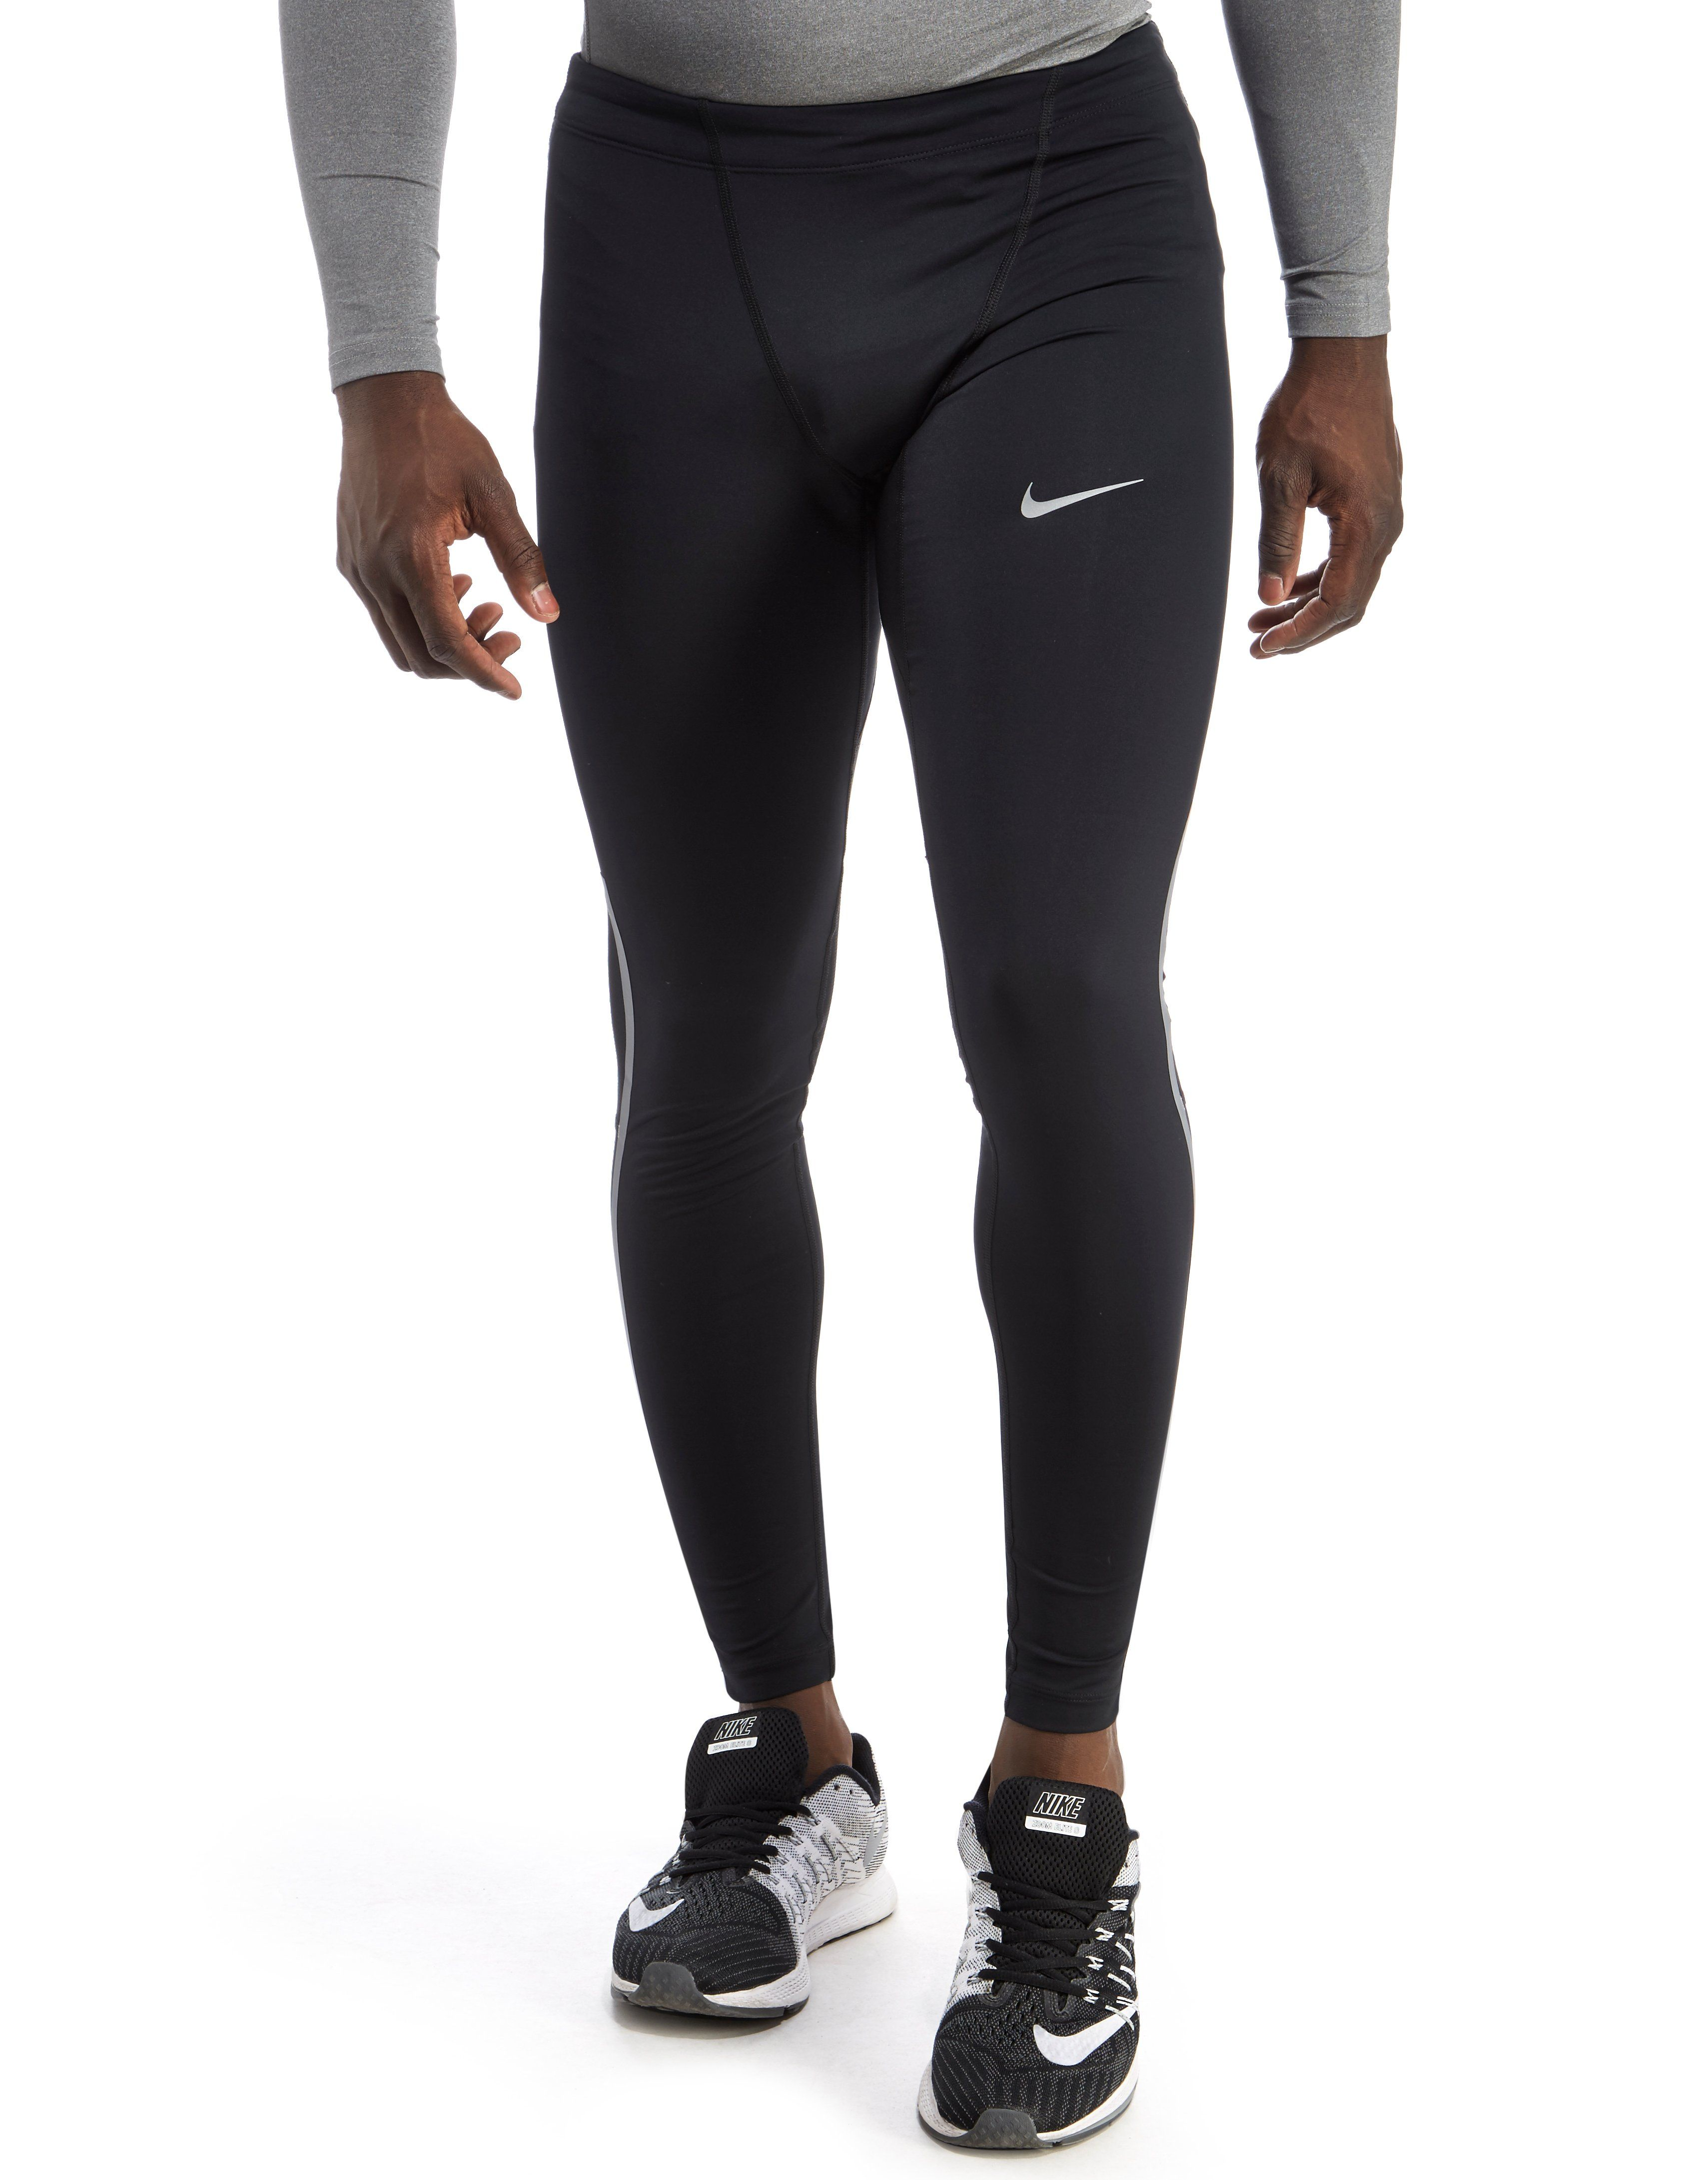 wide varieties top brands new high best Nike Reflective Tech Tights | JD Sports - globcom.org